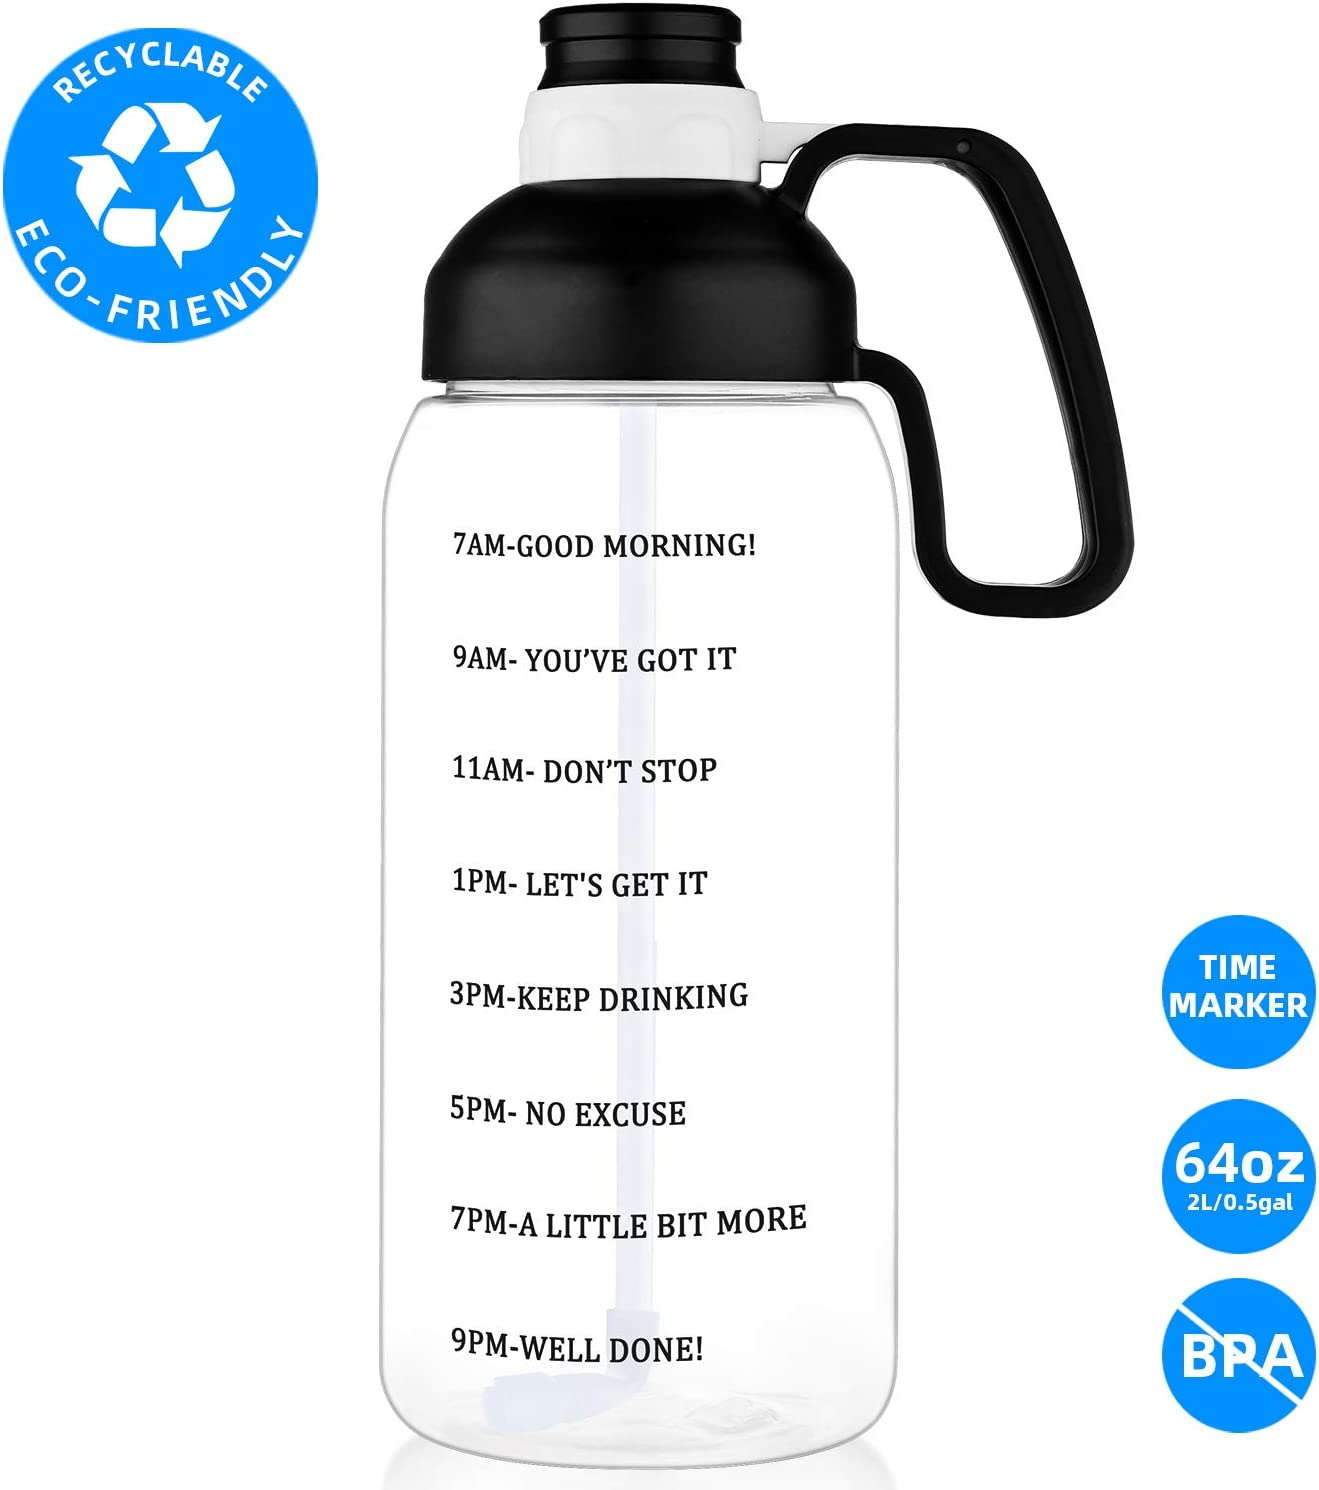 2L Sports Water Bottle BPA Free Wide Mouth Water Jugs for Kitchen,Working 64 OZ Water Bottle with Straw Motivational Water Bottle with Time Marker Large Water Bottle with Handle